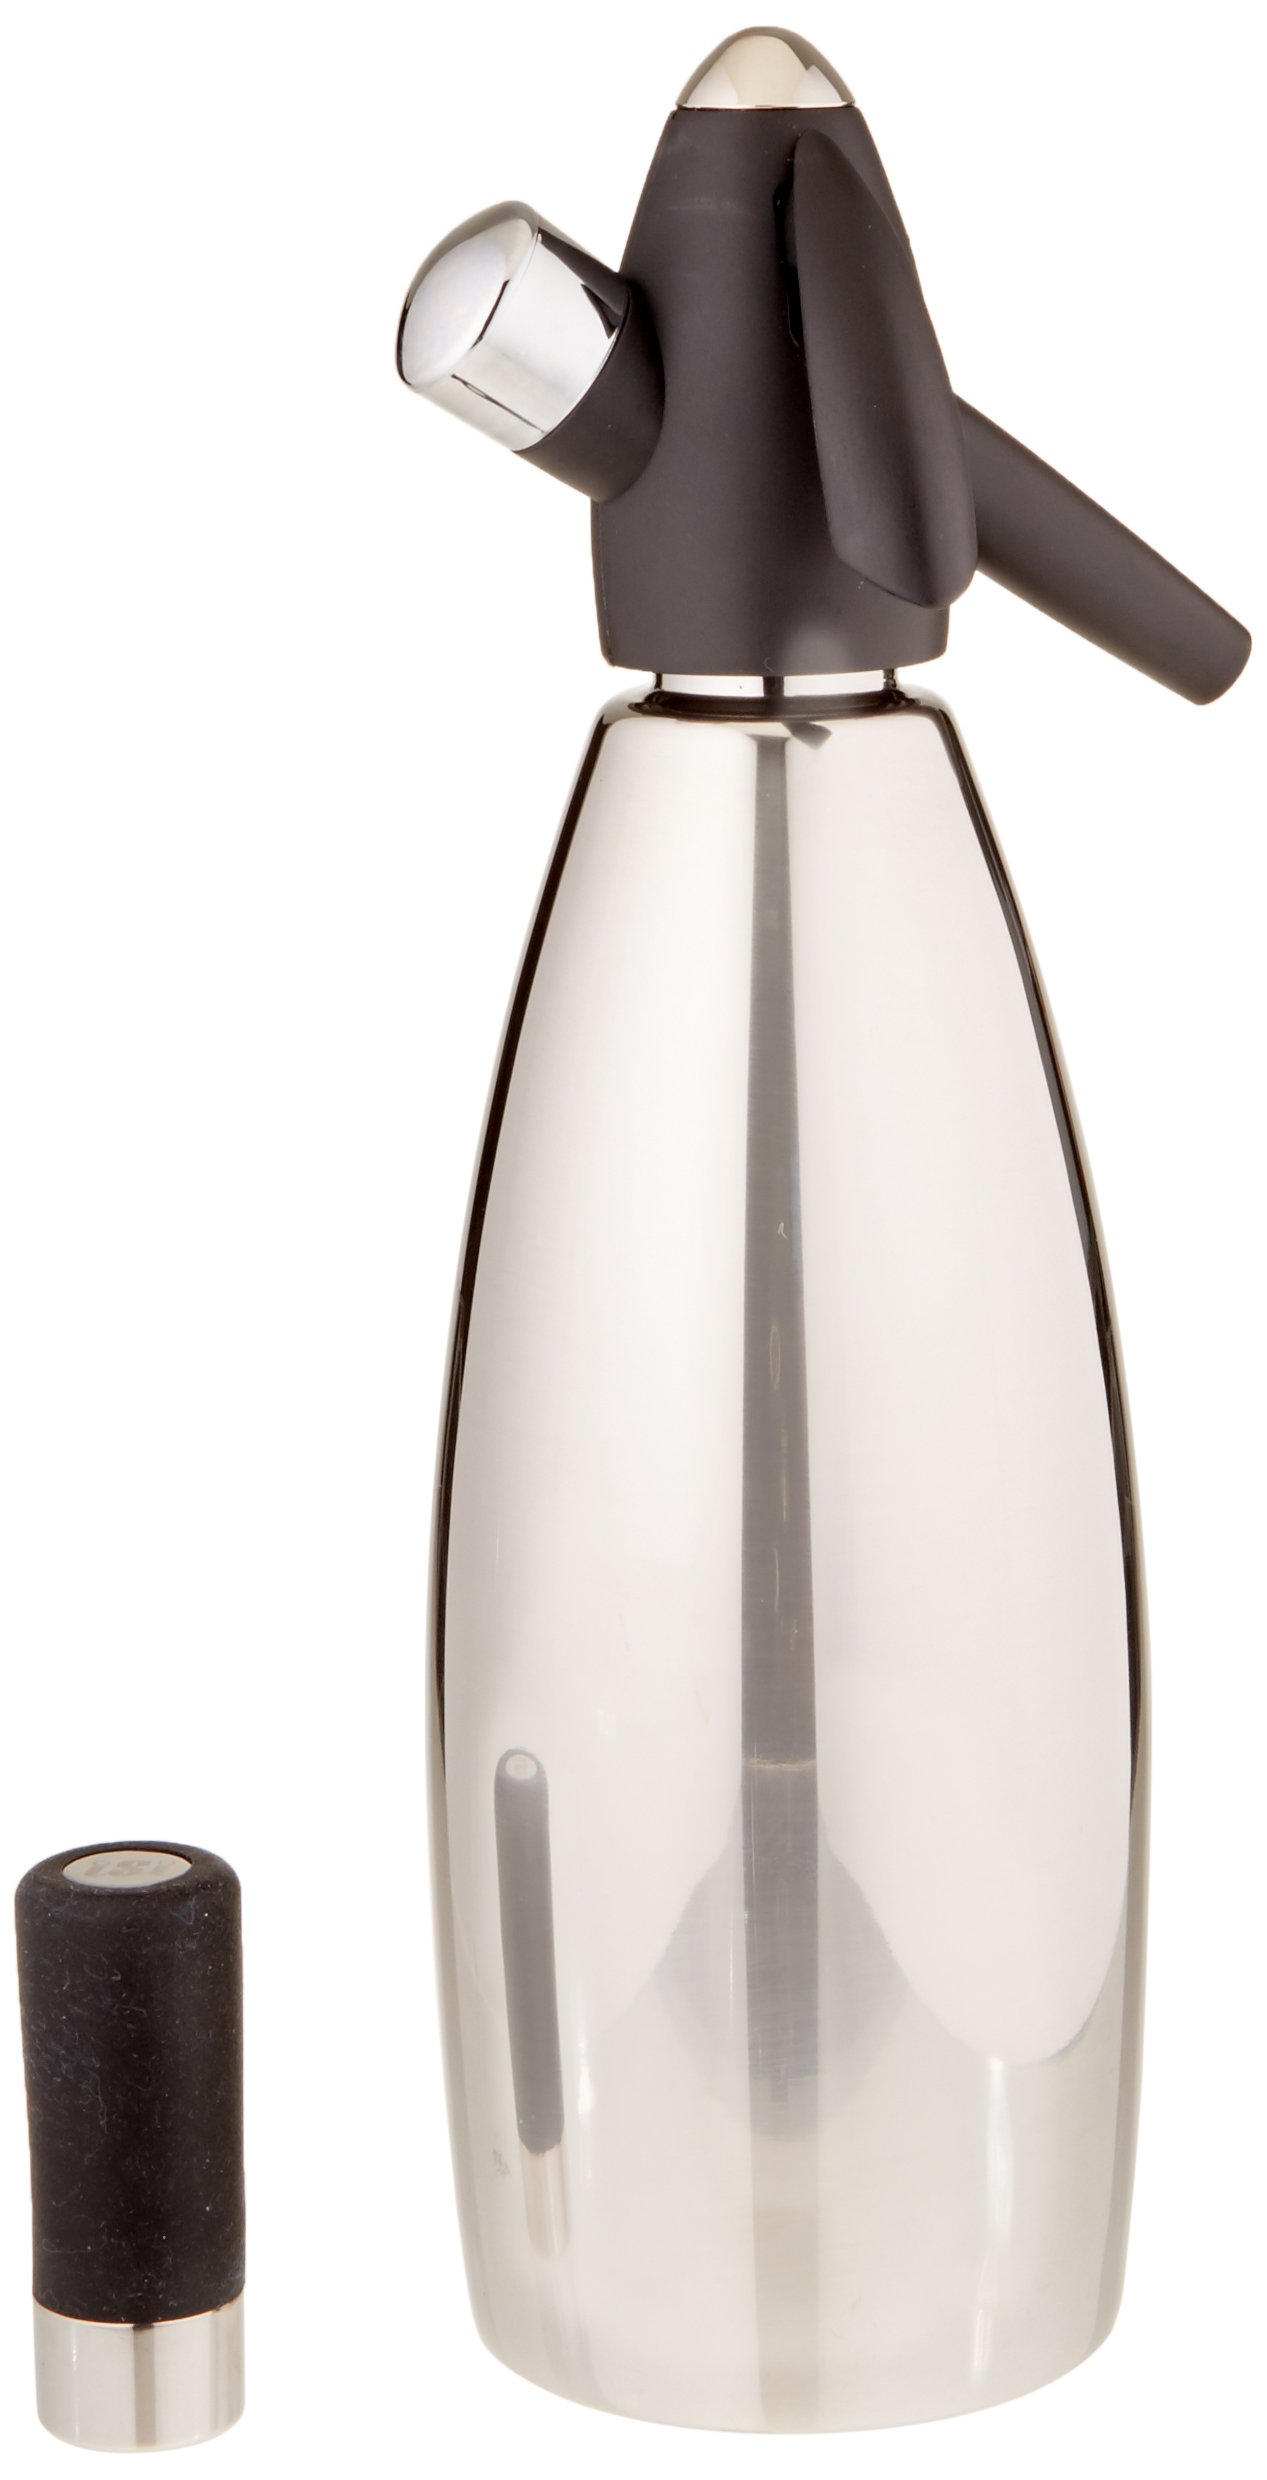 iSi Stainless Steel 1 quart Soda Siphon Bottle, Silver by iSi North America (Image #1)